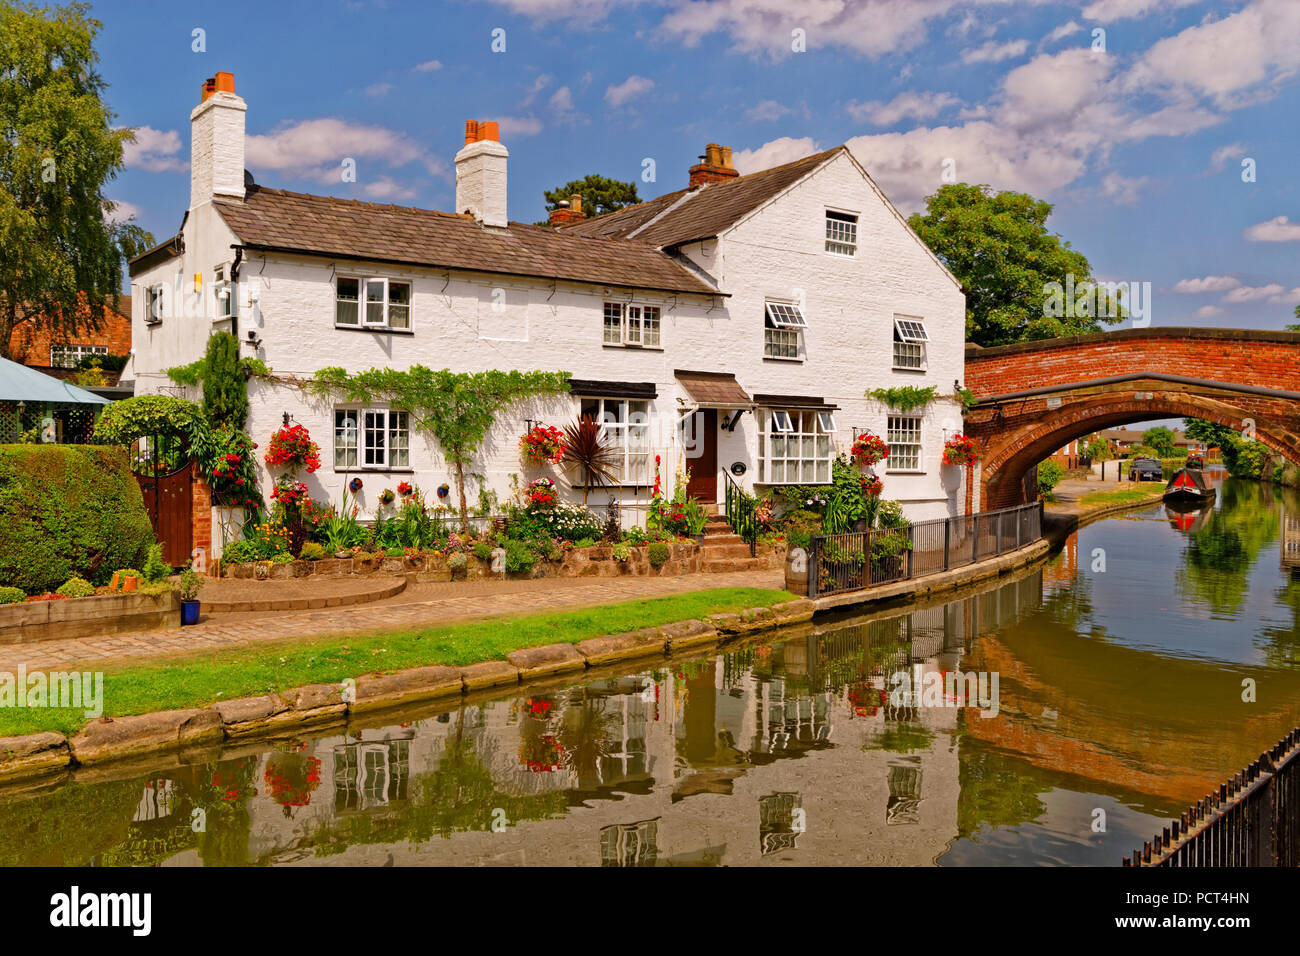 Bridgewater canal in Lymm village, Warrington, Cheshire, England, UK. - Stock Image